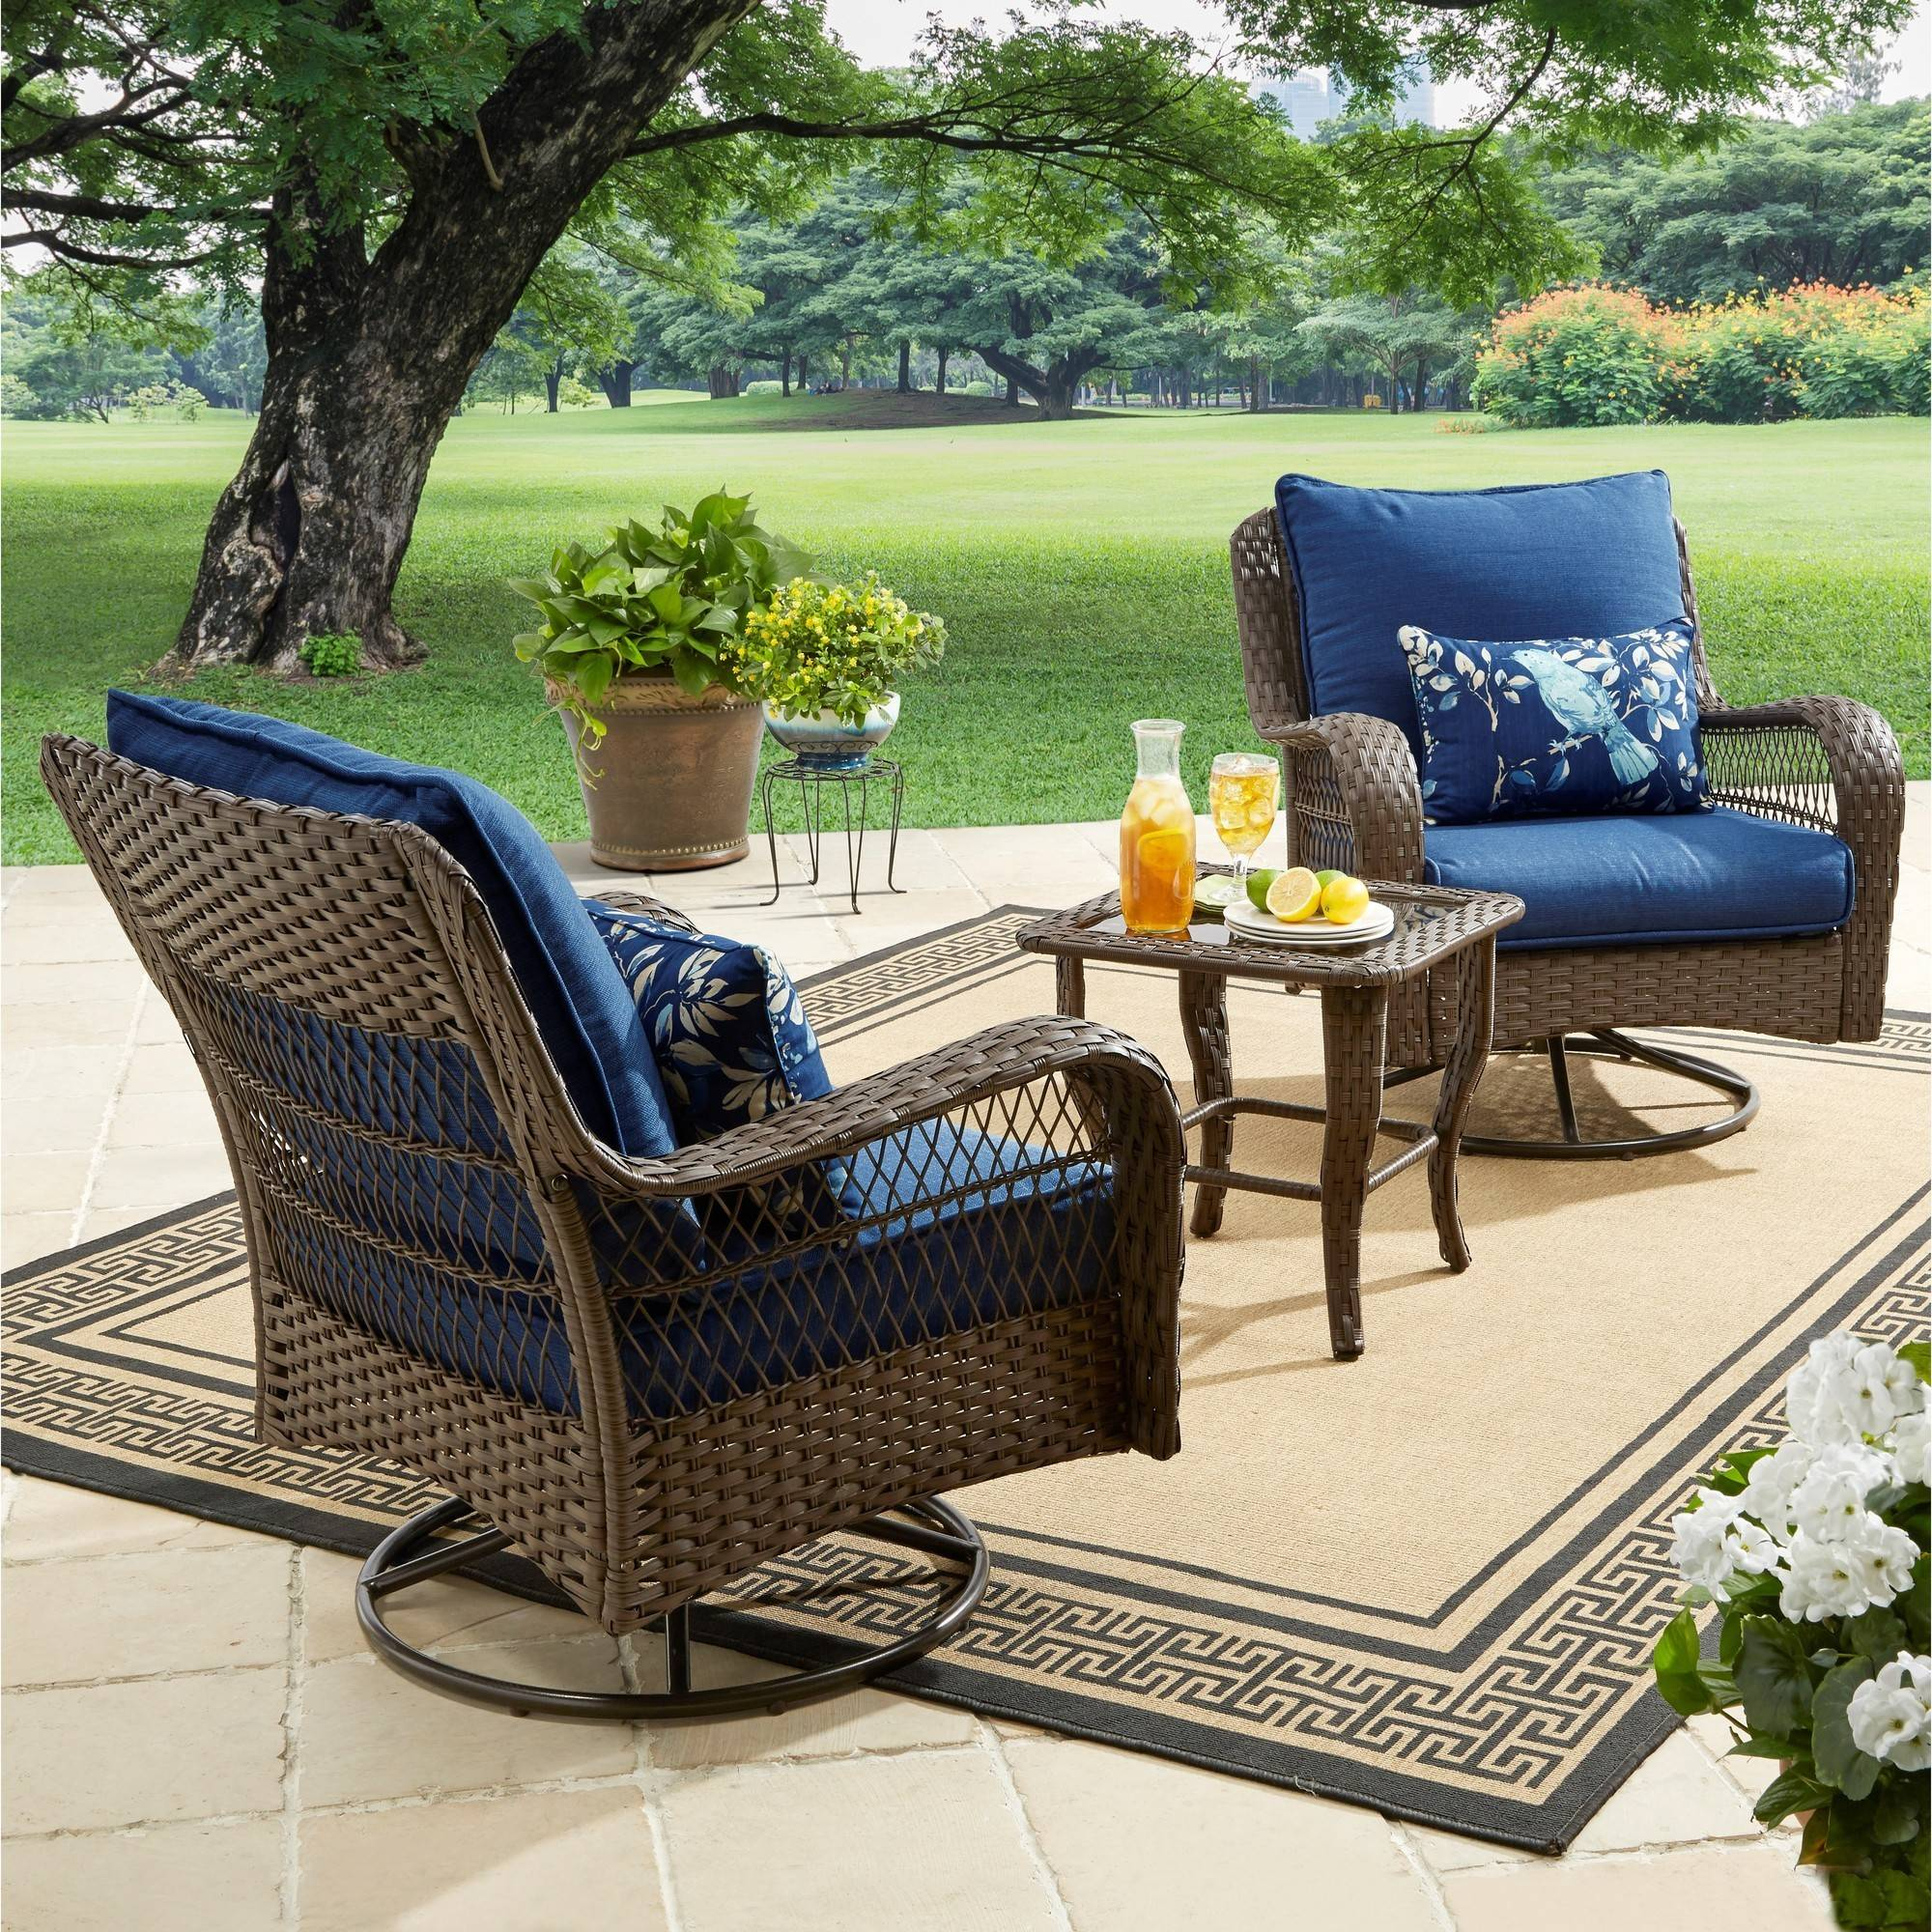 Better Homes & Gardens Colebrook 3 Piece Outdoor Chat set, Seats 2